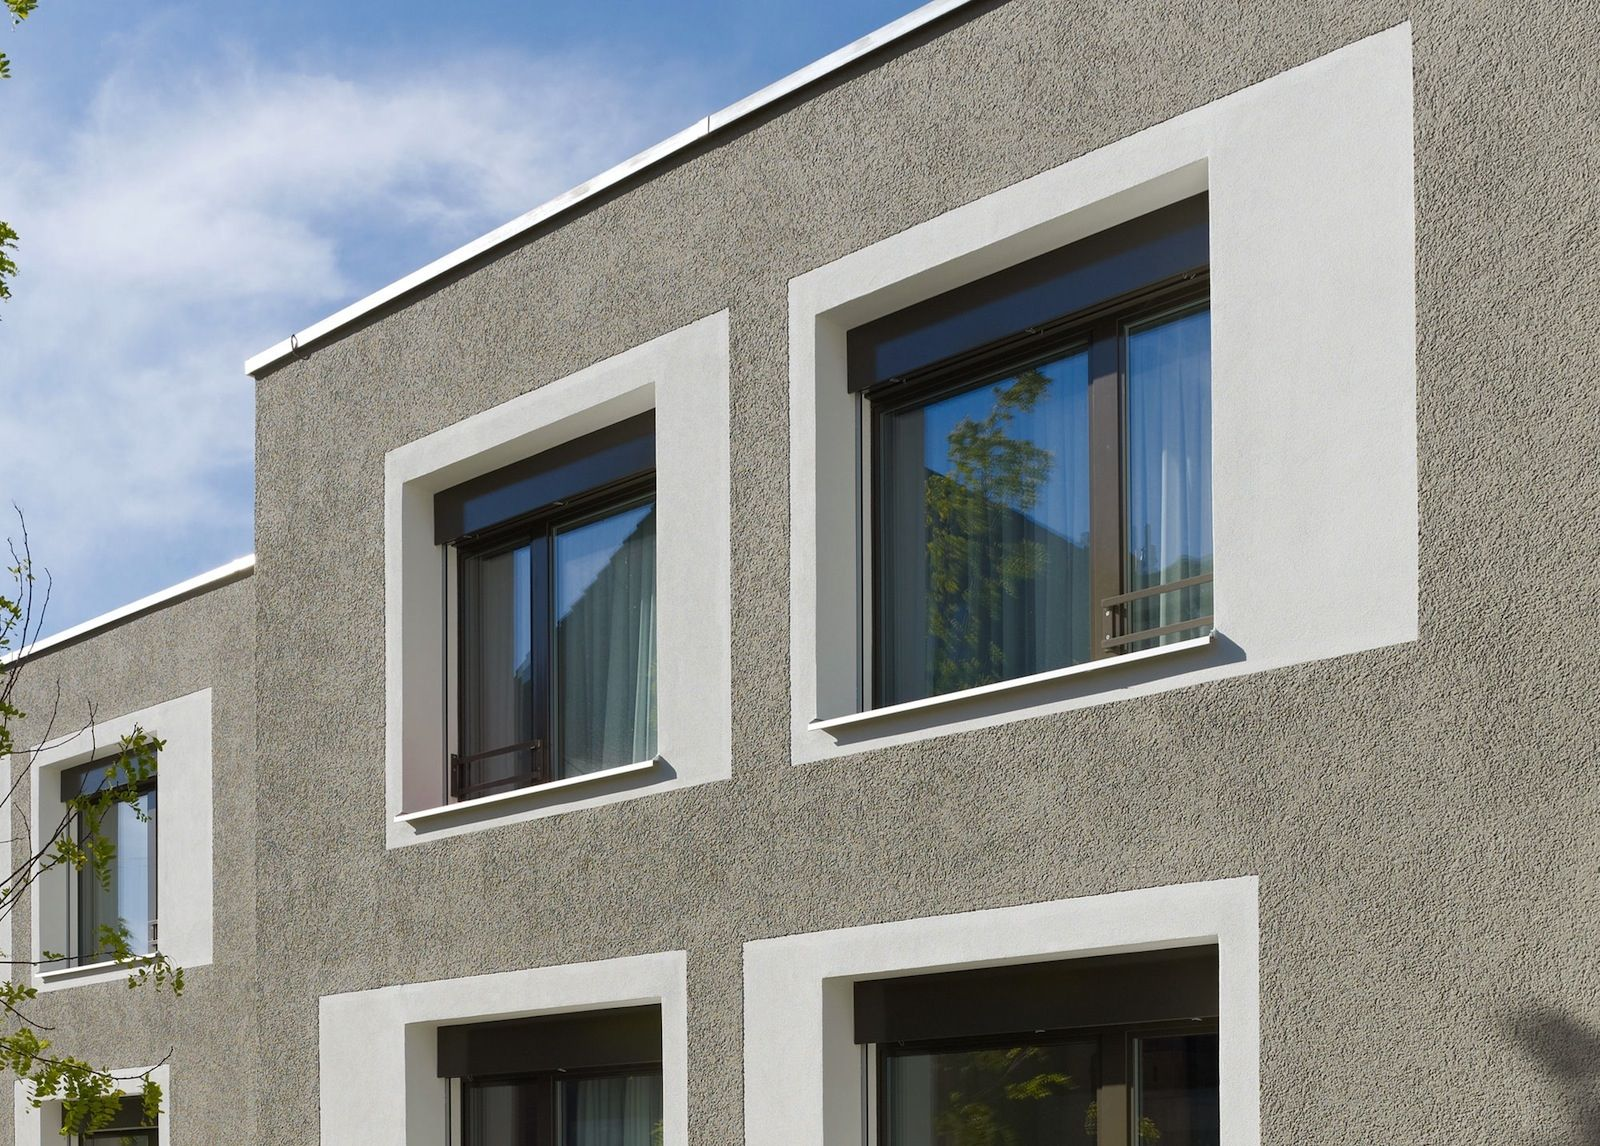 J rg zimmermann z rich pinteres for Stucco facade